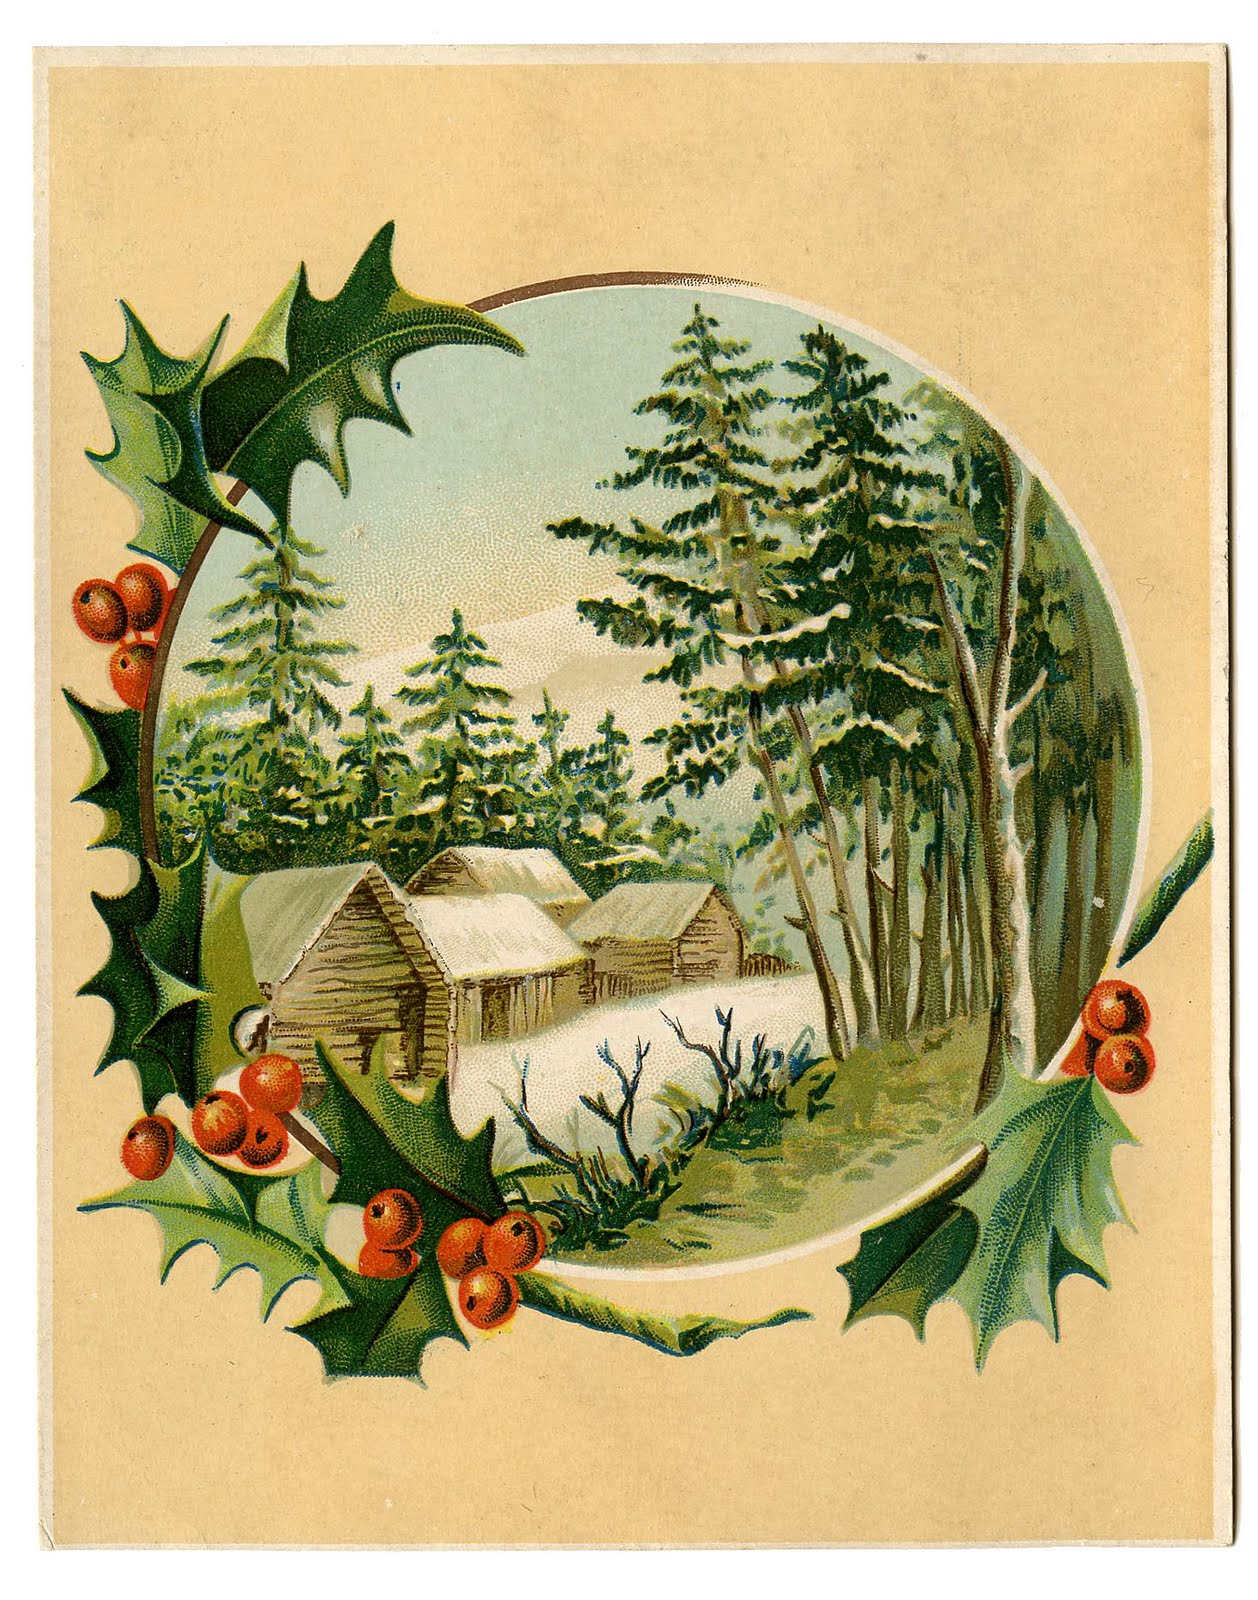 Vintage Christmas Clip Art   Winter Scene   Holly Frame   The Graphics